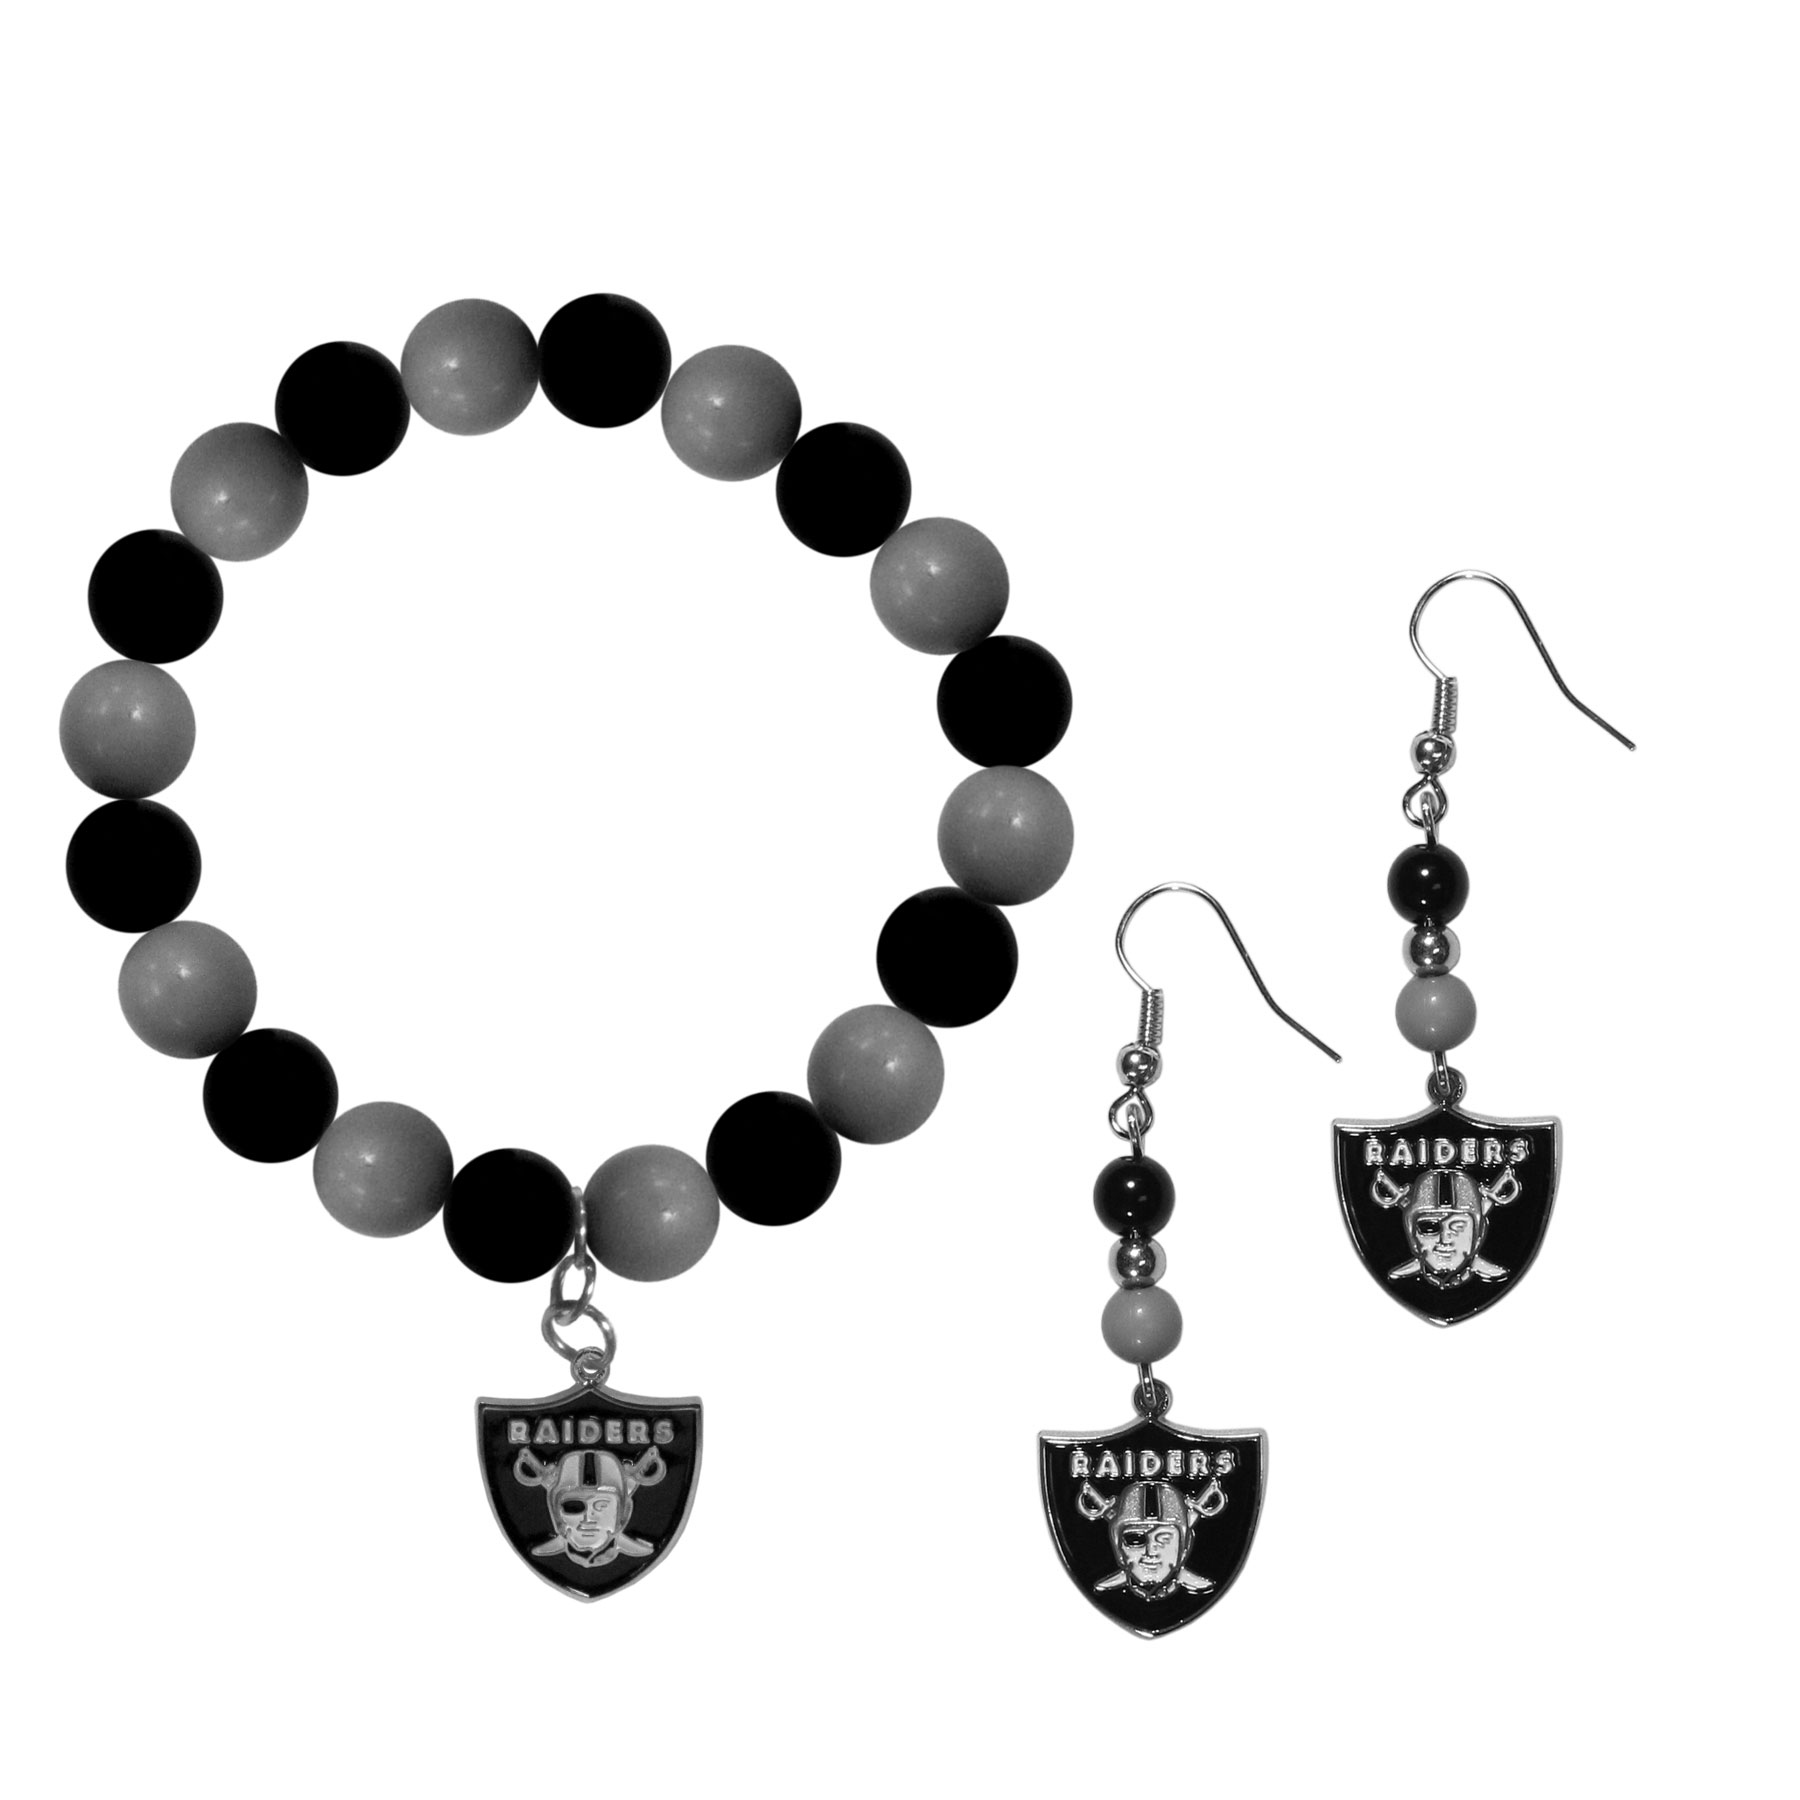 Oakland Raiders Fan Bead Earrings and Bracelet Set - This fun and colorful Oakland Raiders fan bead jewelry set is fun and casual with eye-catching beads in bright team colors. The fashionable dangle earrings feature a team colored beads that drop down to a carved and enameled charm. The stretch bracelet has larger matching beads that make a striking statement and have a matching team charm. These sassy yet sporty jewelry pieces make a perfect gift for any female fan. Spice up your game-day outfit with these fun colorful earrings and bracelet that are also cute enough for any day.